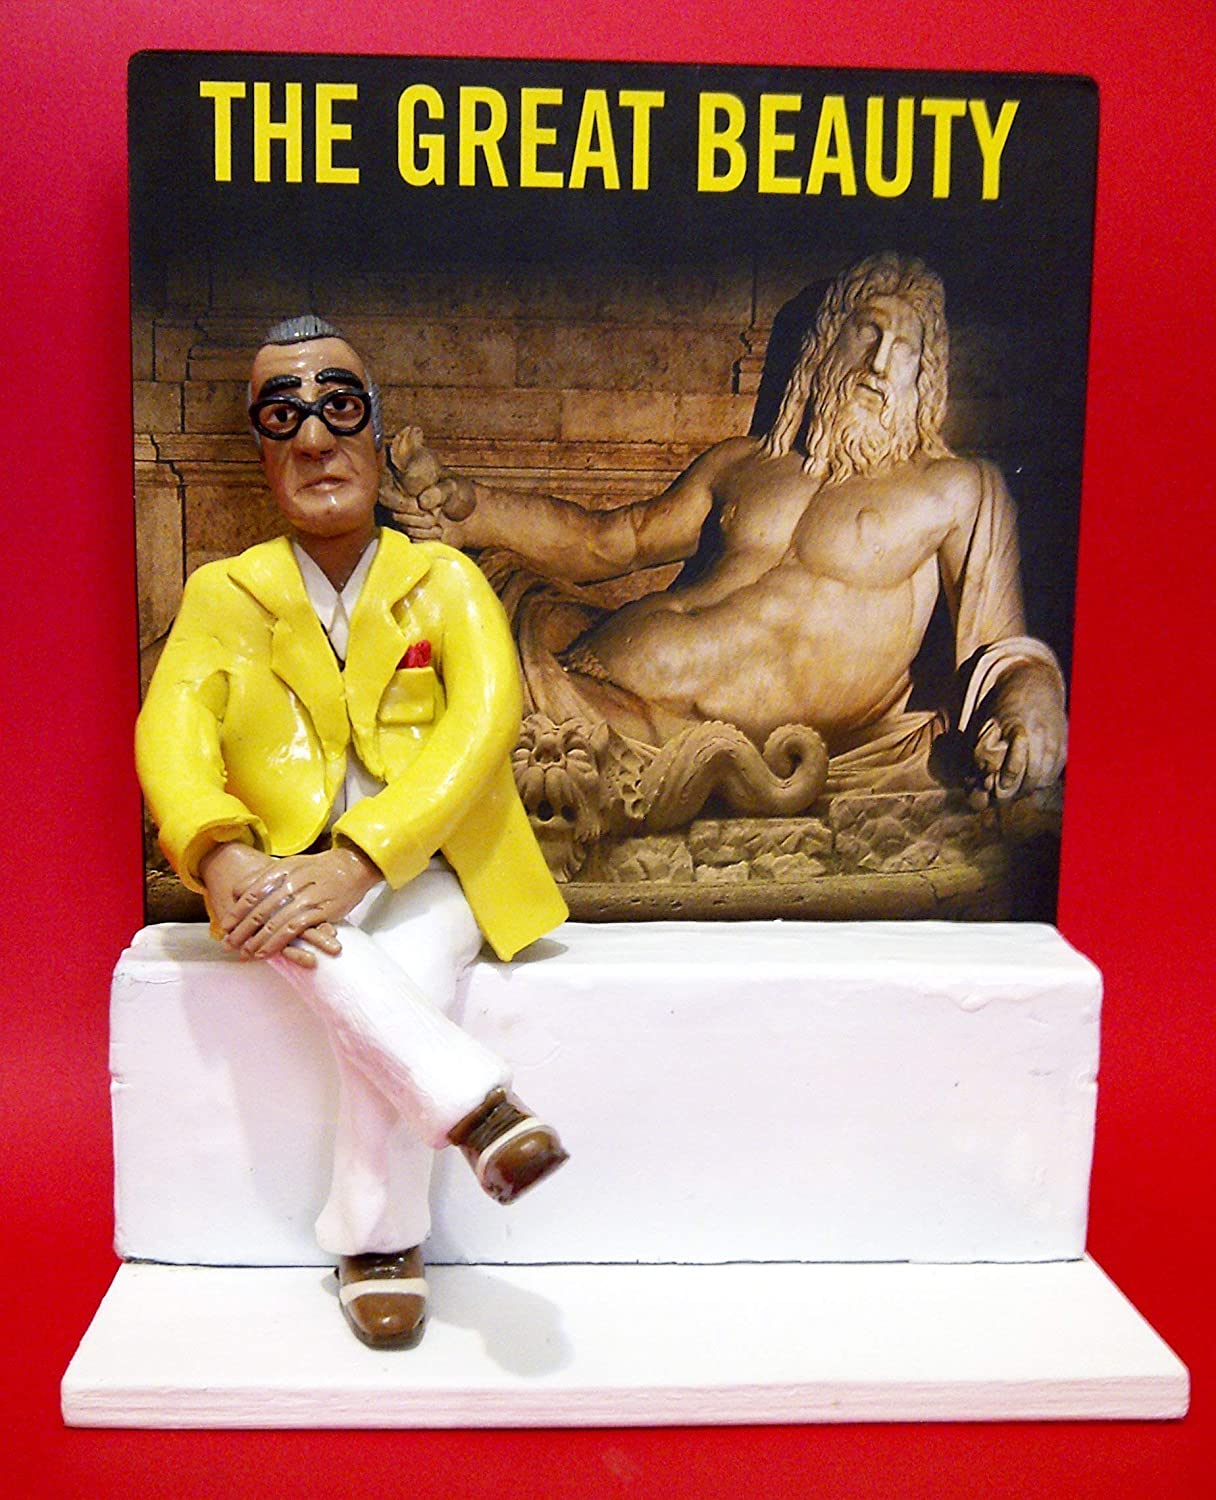 Statuina - ACTION FIGURES Jep Gambardella - La Grande Bellezza - The Great Beauty